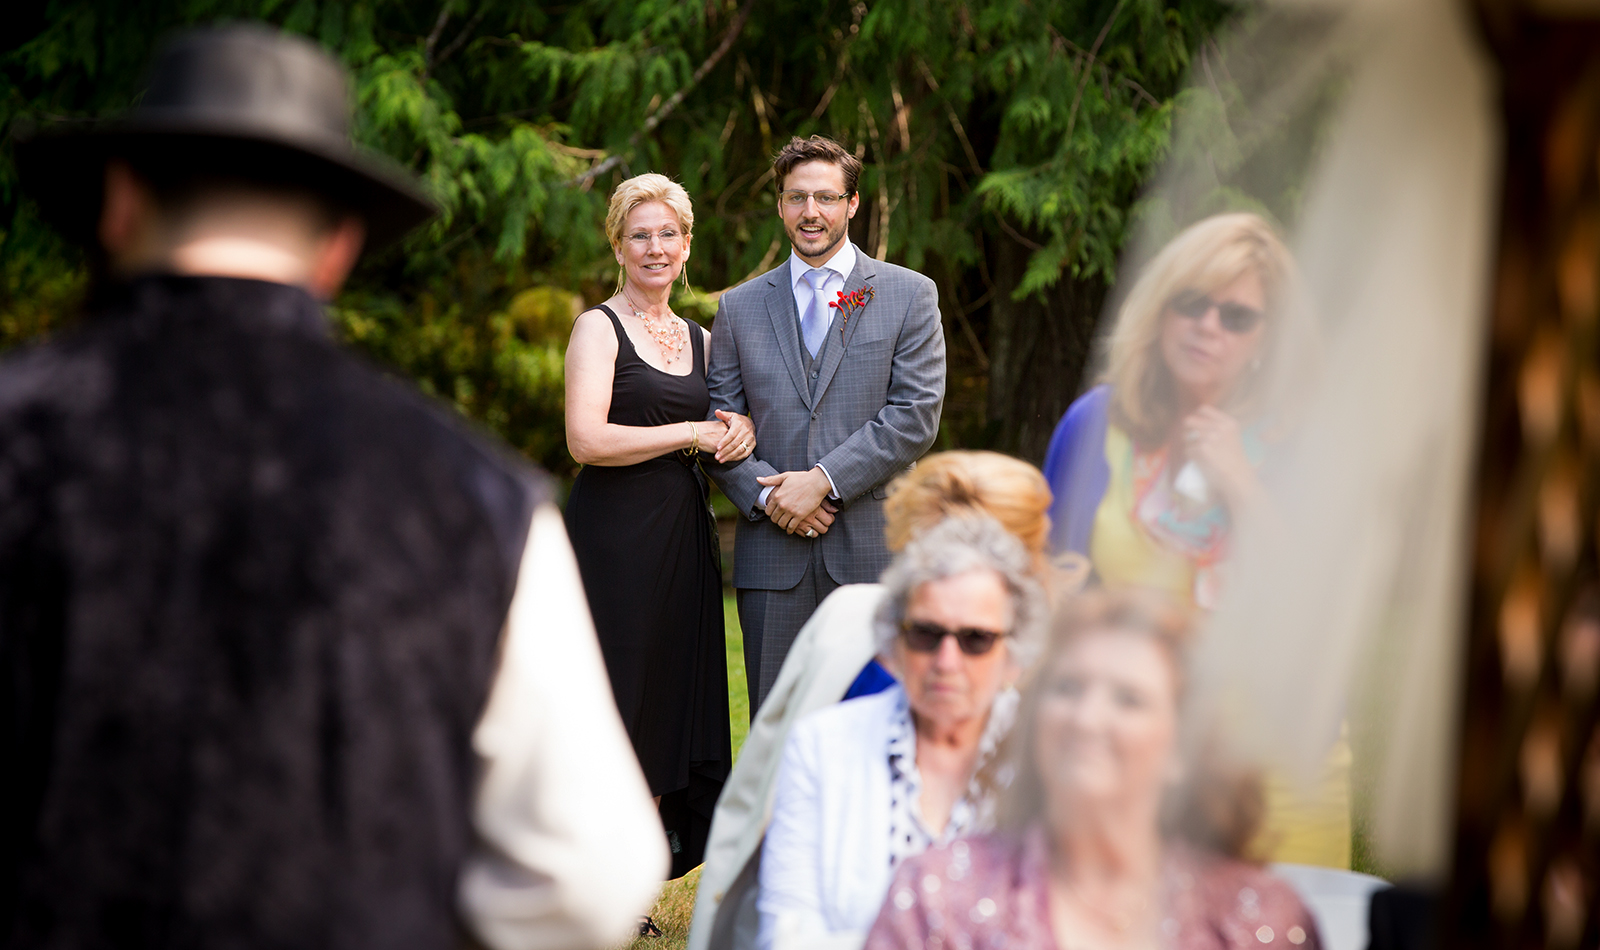 The wedding of Genevieve & Andrew at Lake Crescent Lodge near Port Angeles, Washington. (Photo by Scott Eklund /Red Box Pictures)